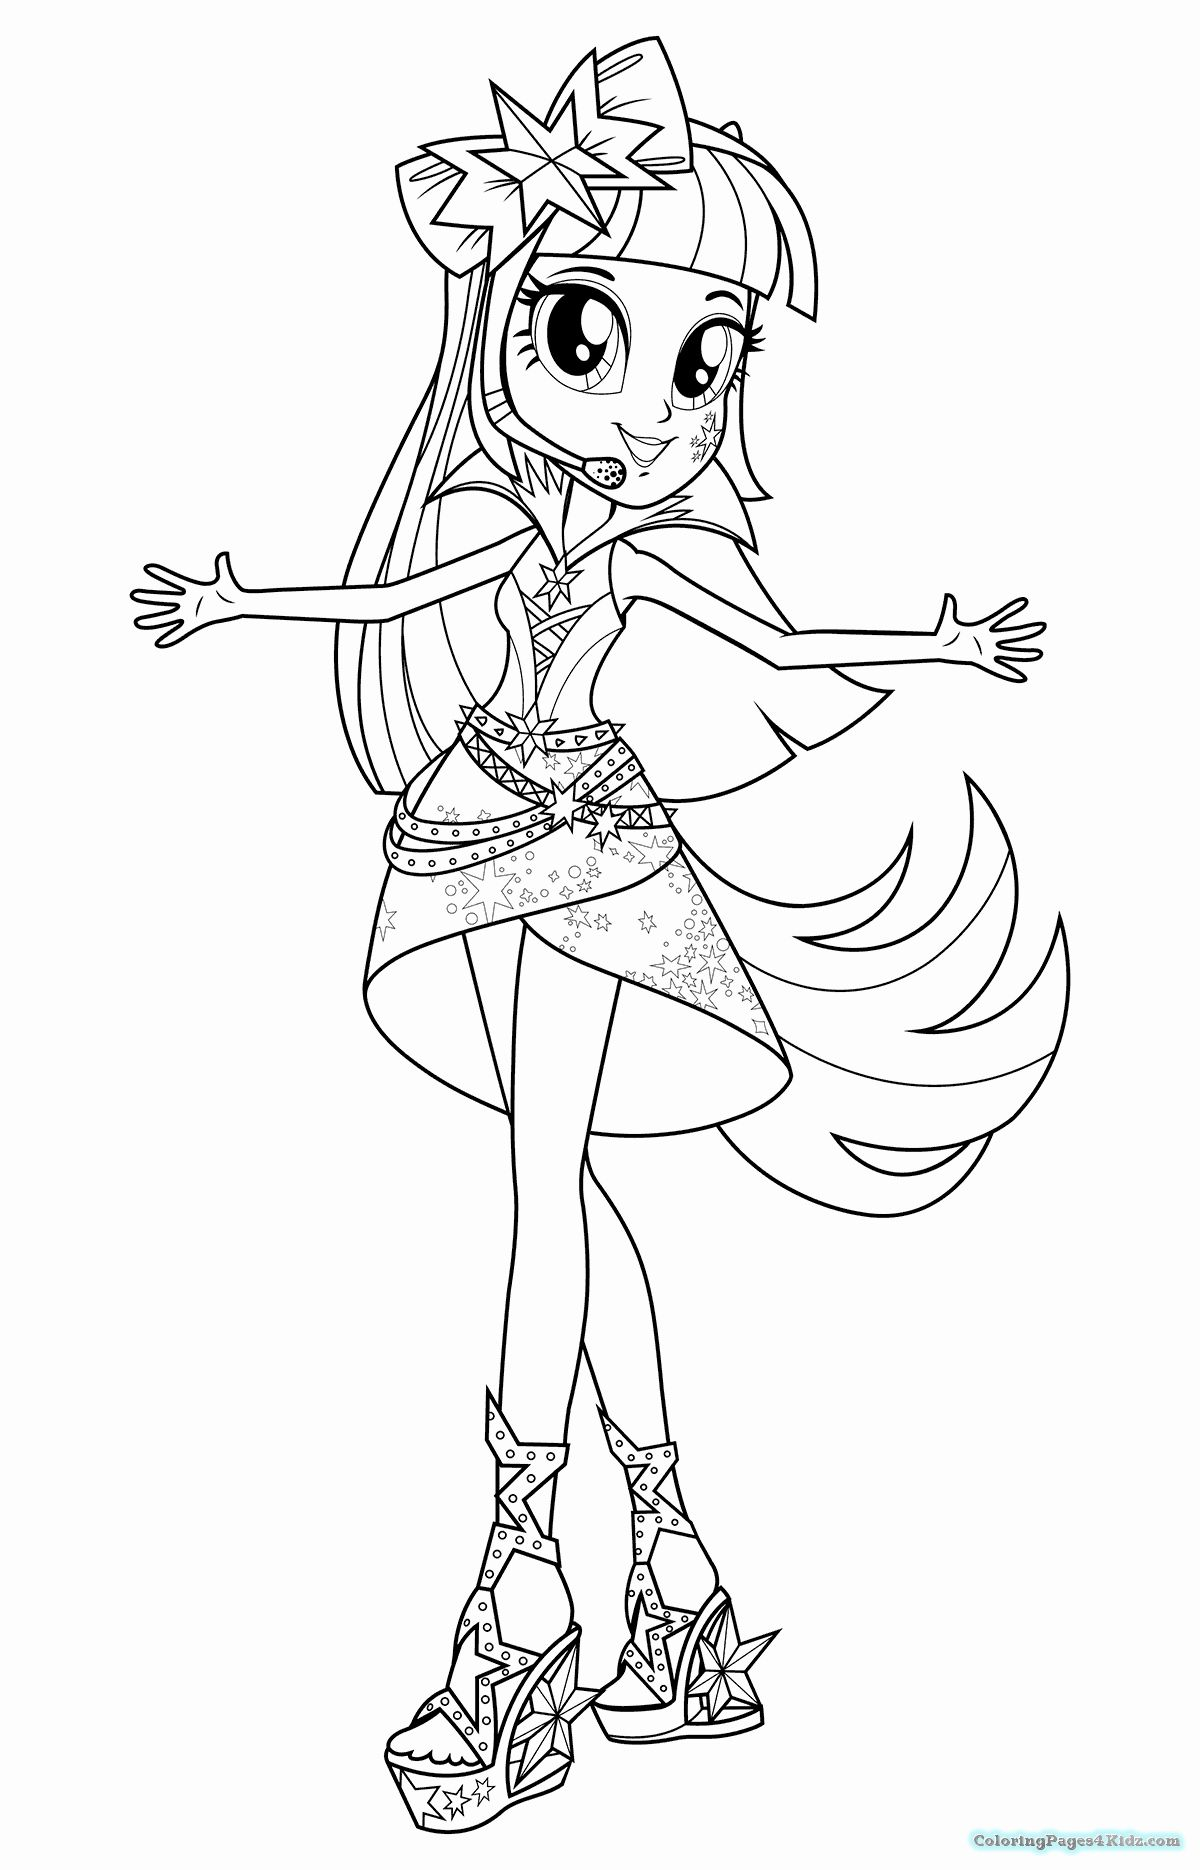 My Little Pony Equestria Girls Coloring Page Inspirational My Little Pony Equestria Girls In 2020 Coloring Pages For Girls Coloring Pages Inspirational My Little Pony